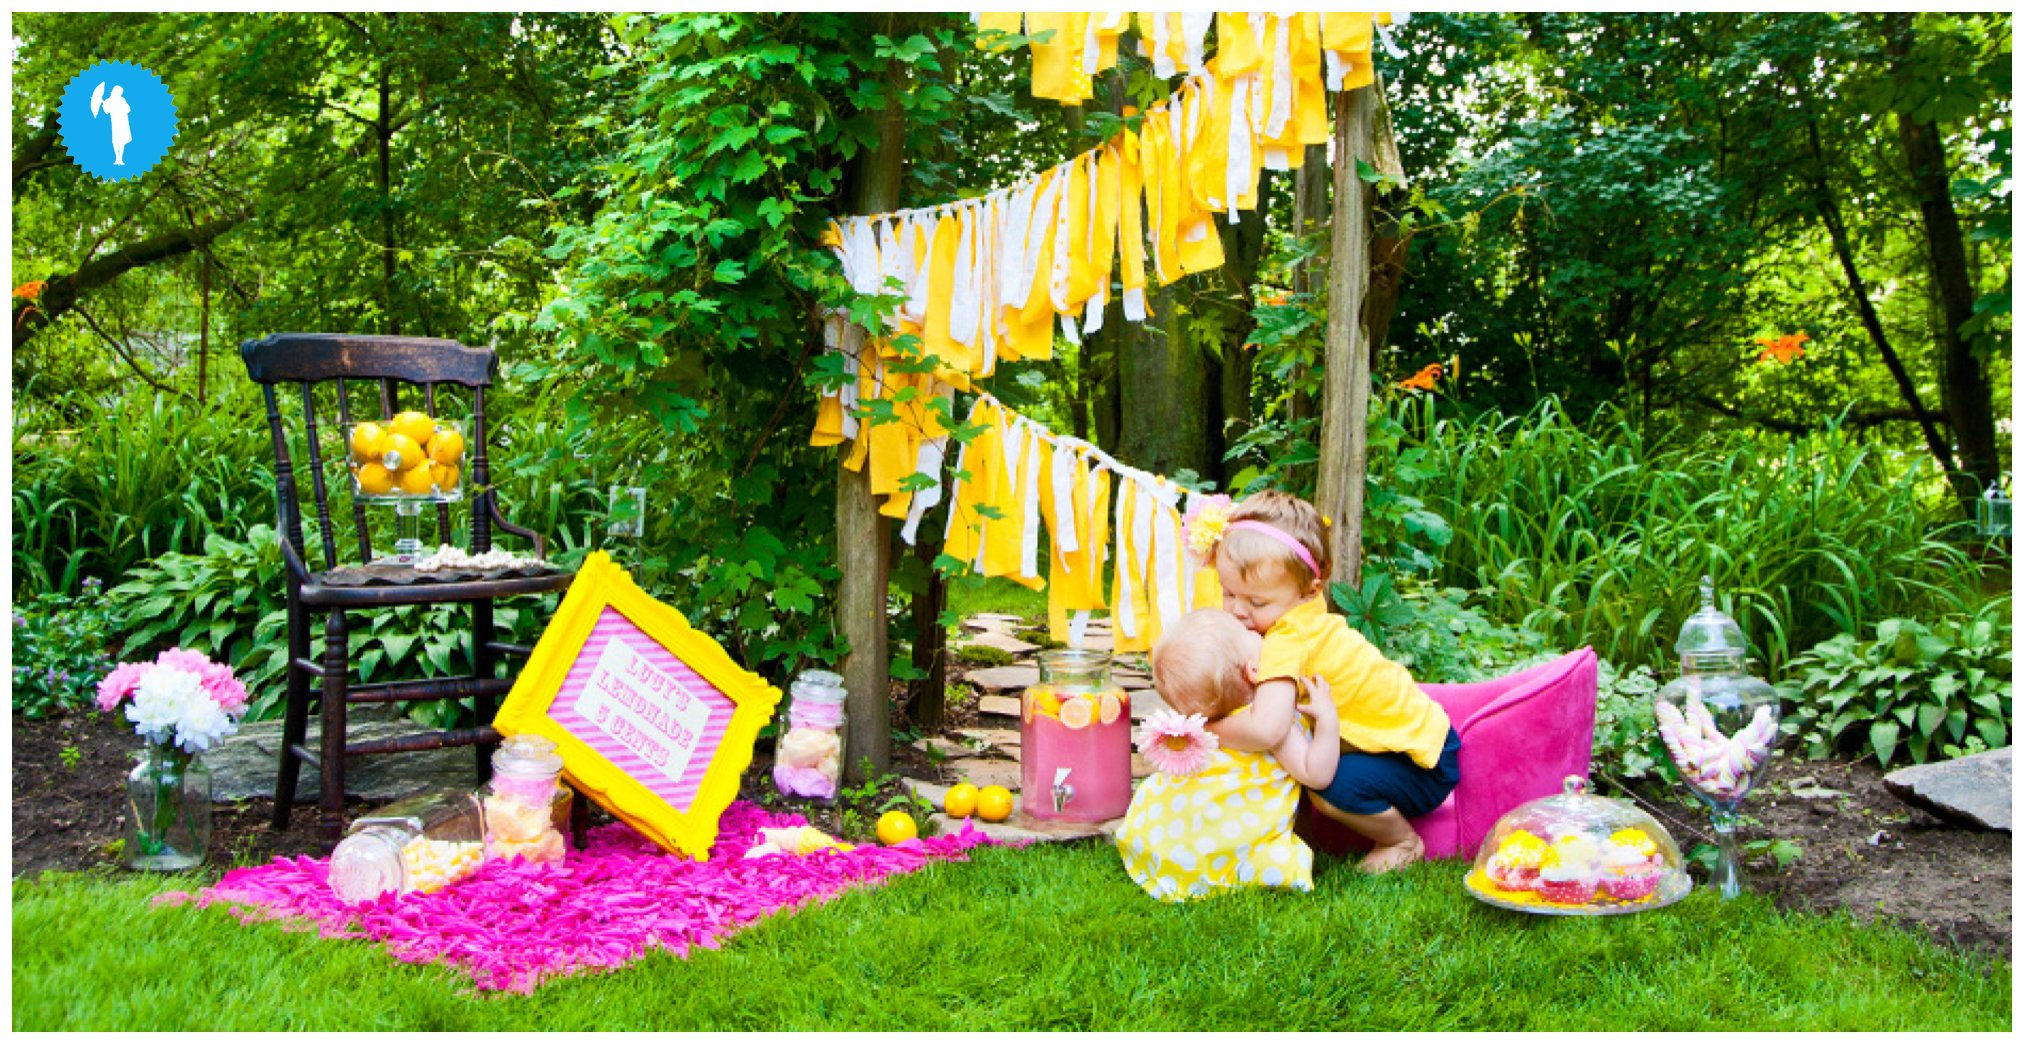 Lemonade stand photography in Kitchener Waterloo by Emily Beatty.